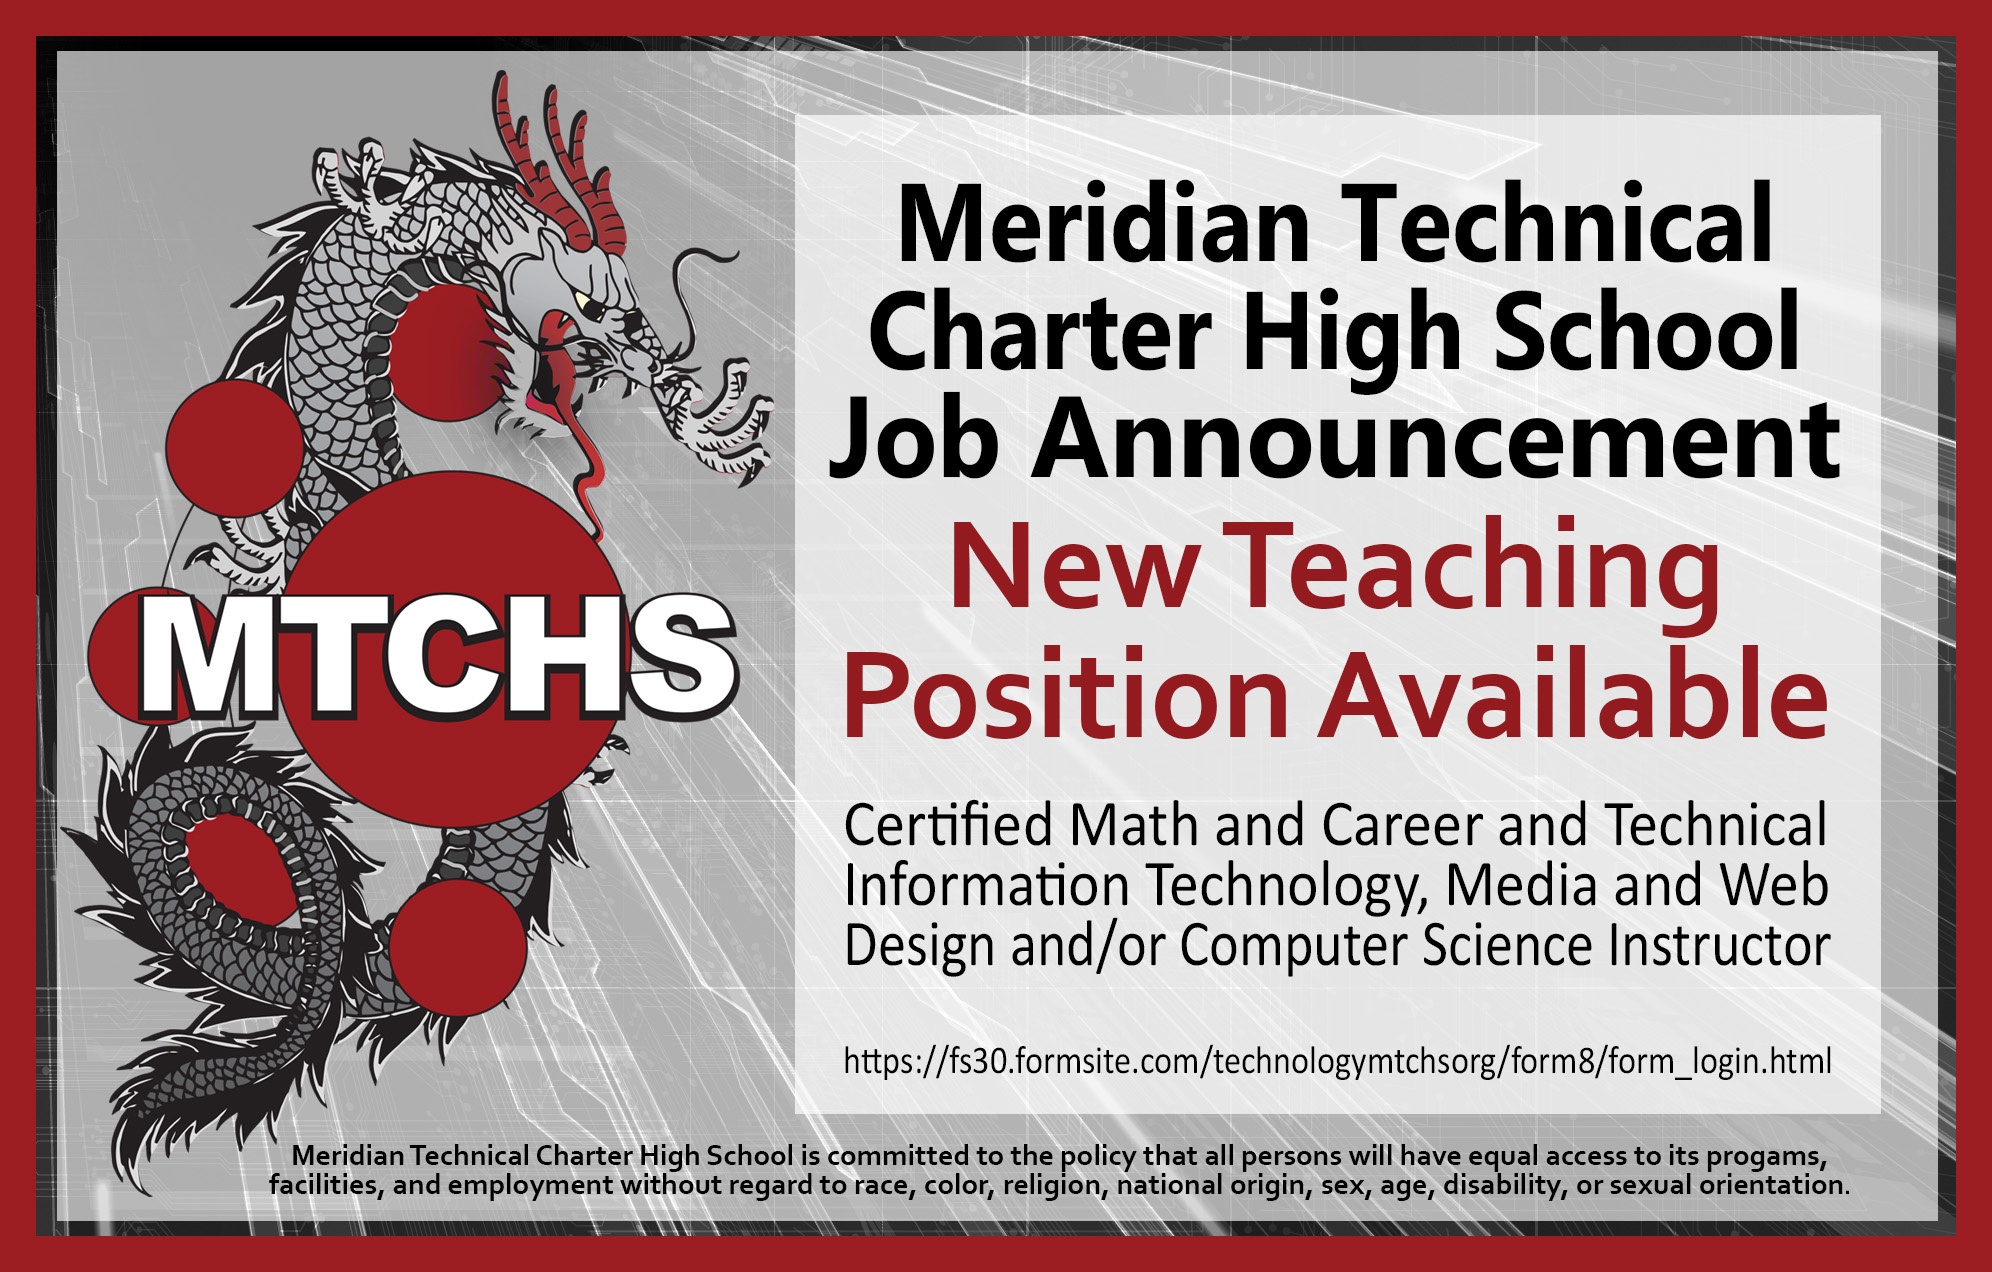 MTCHS Job Opening